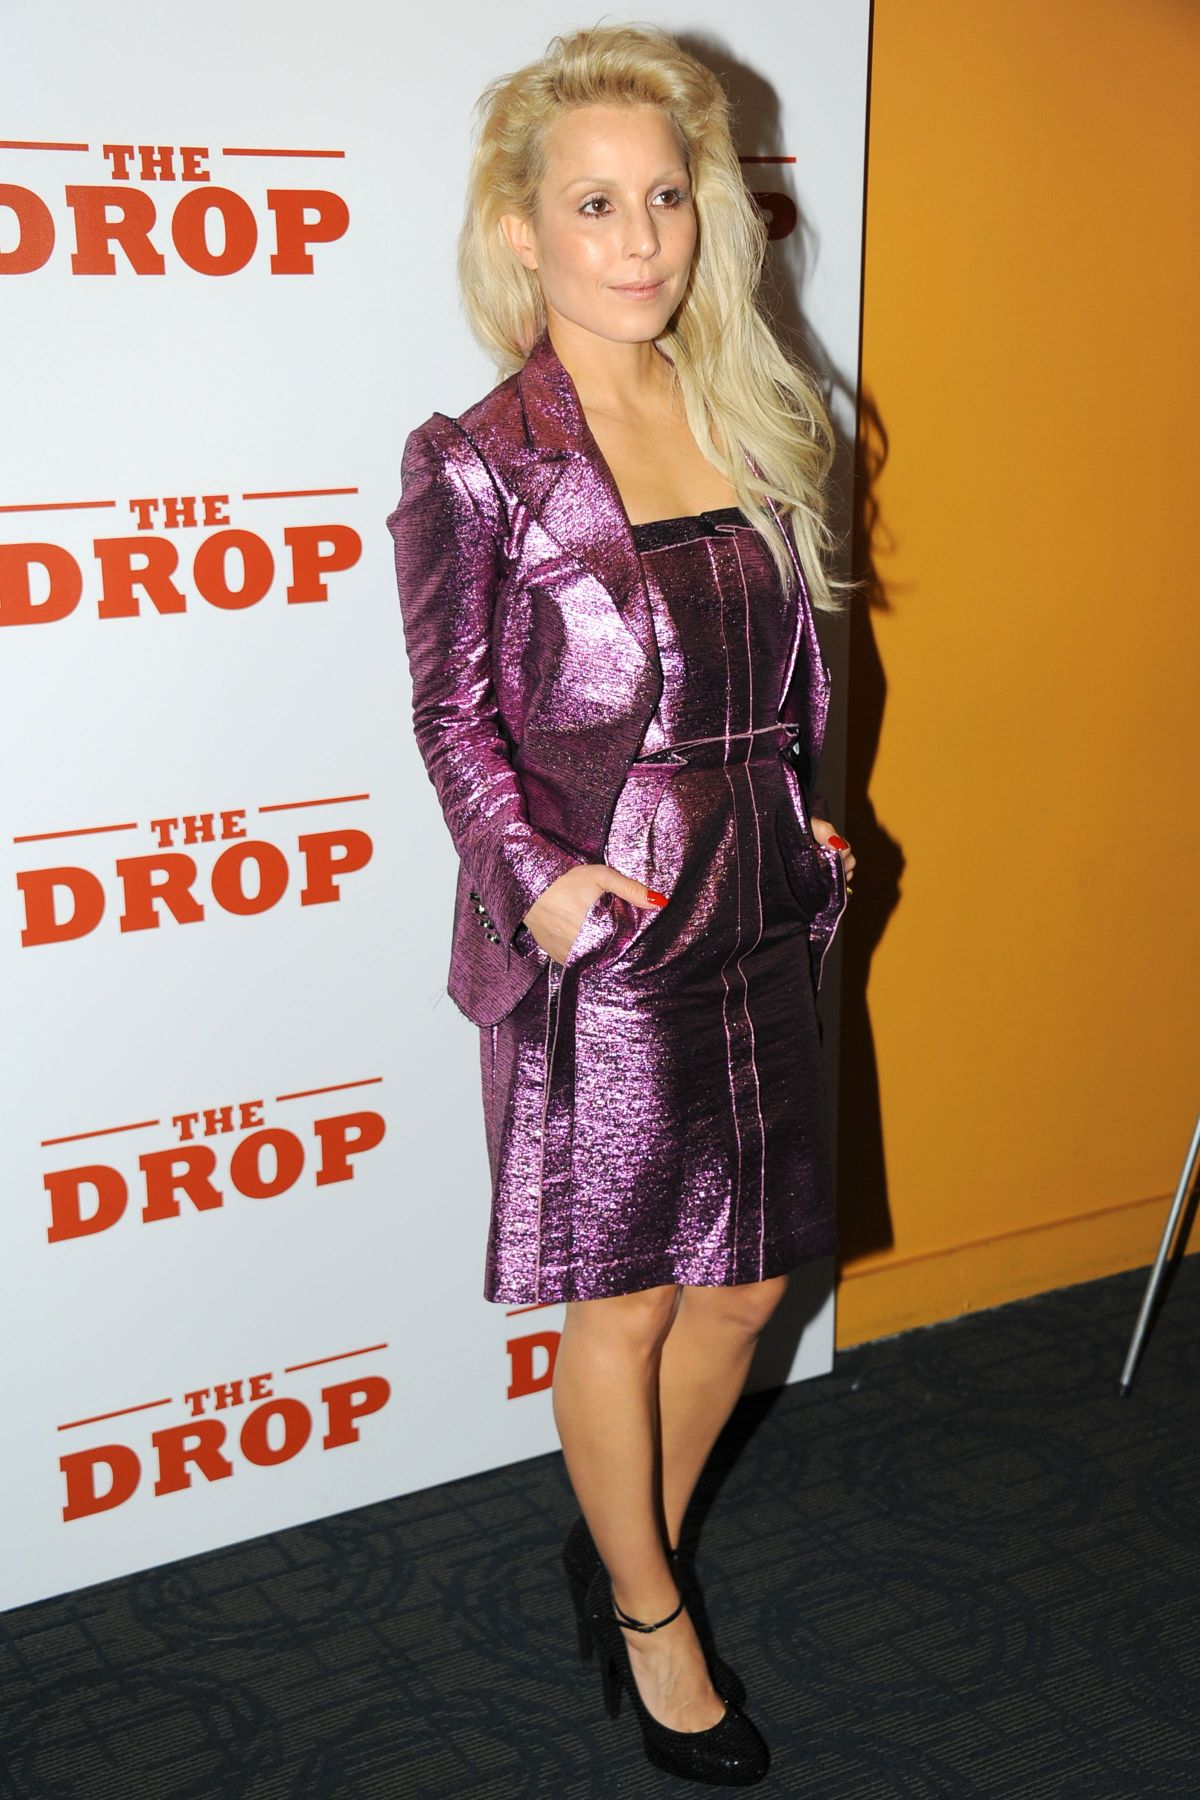 NOOMI RAPACE at The Drop Screening in New York